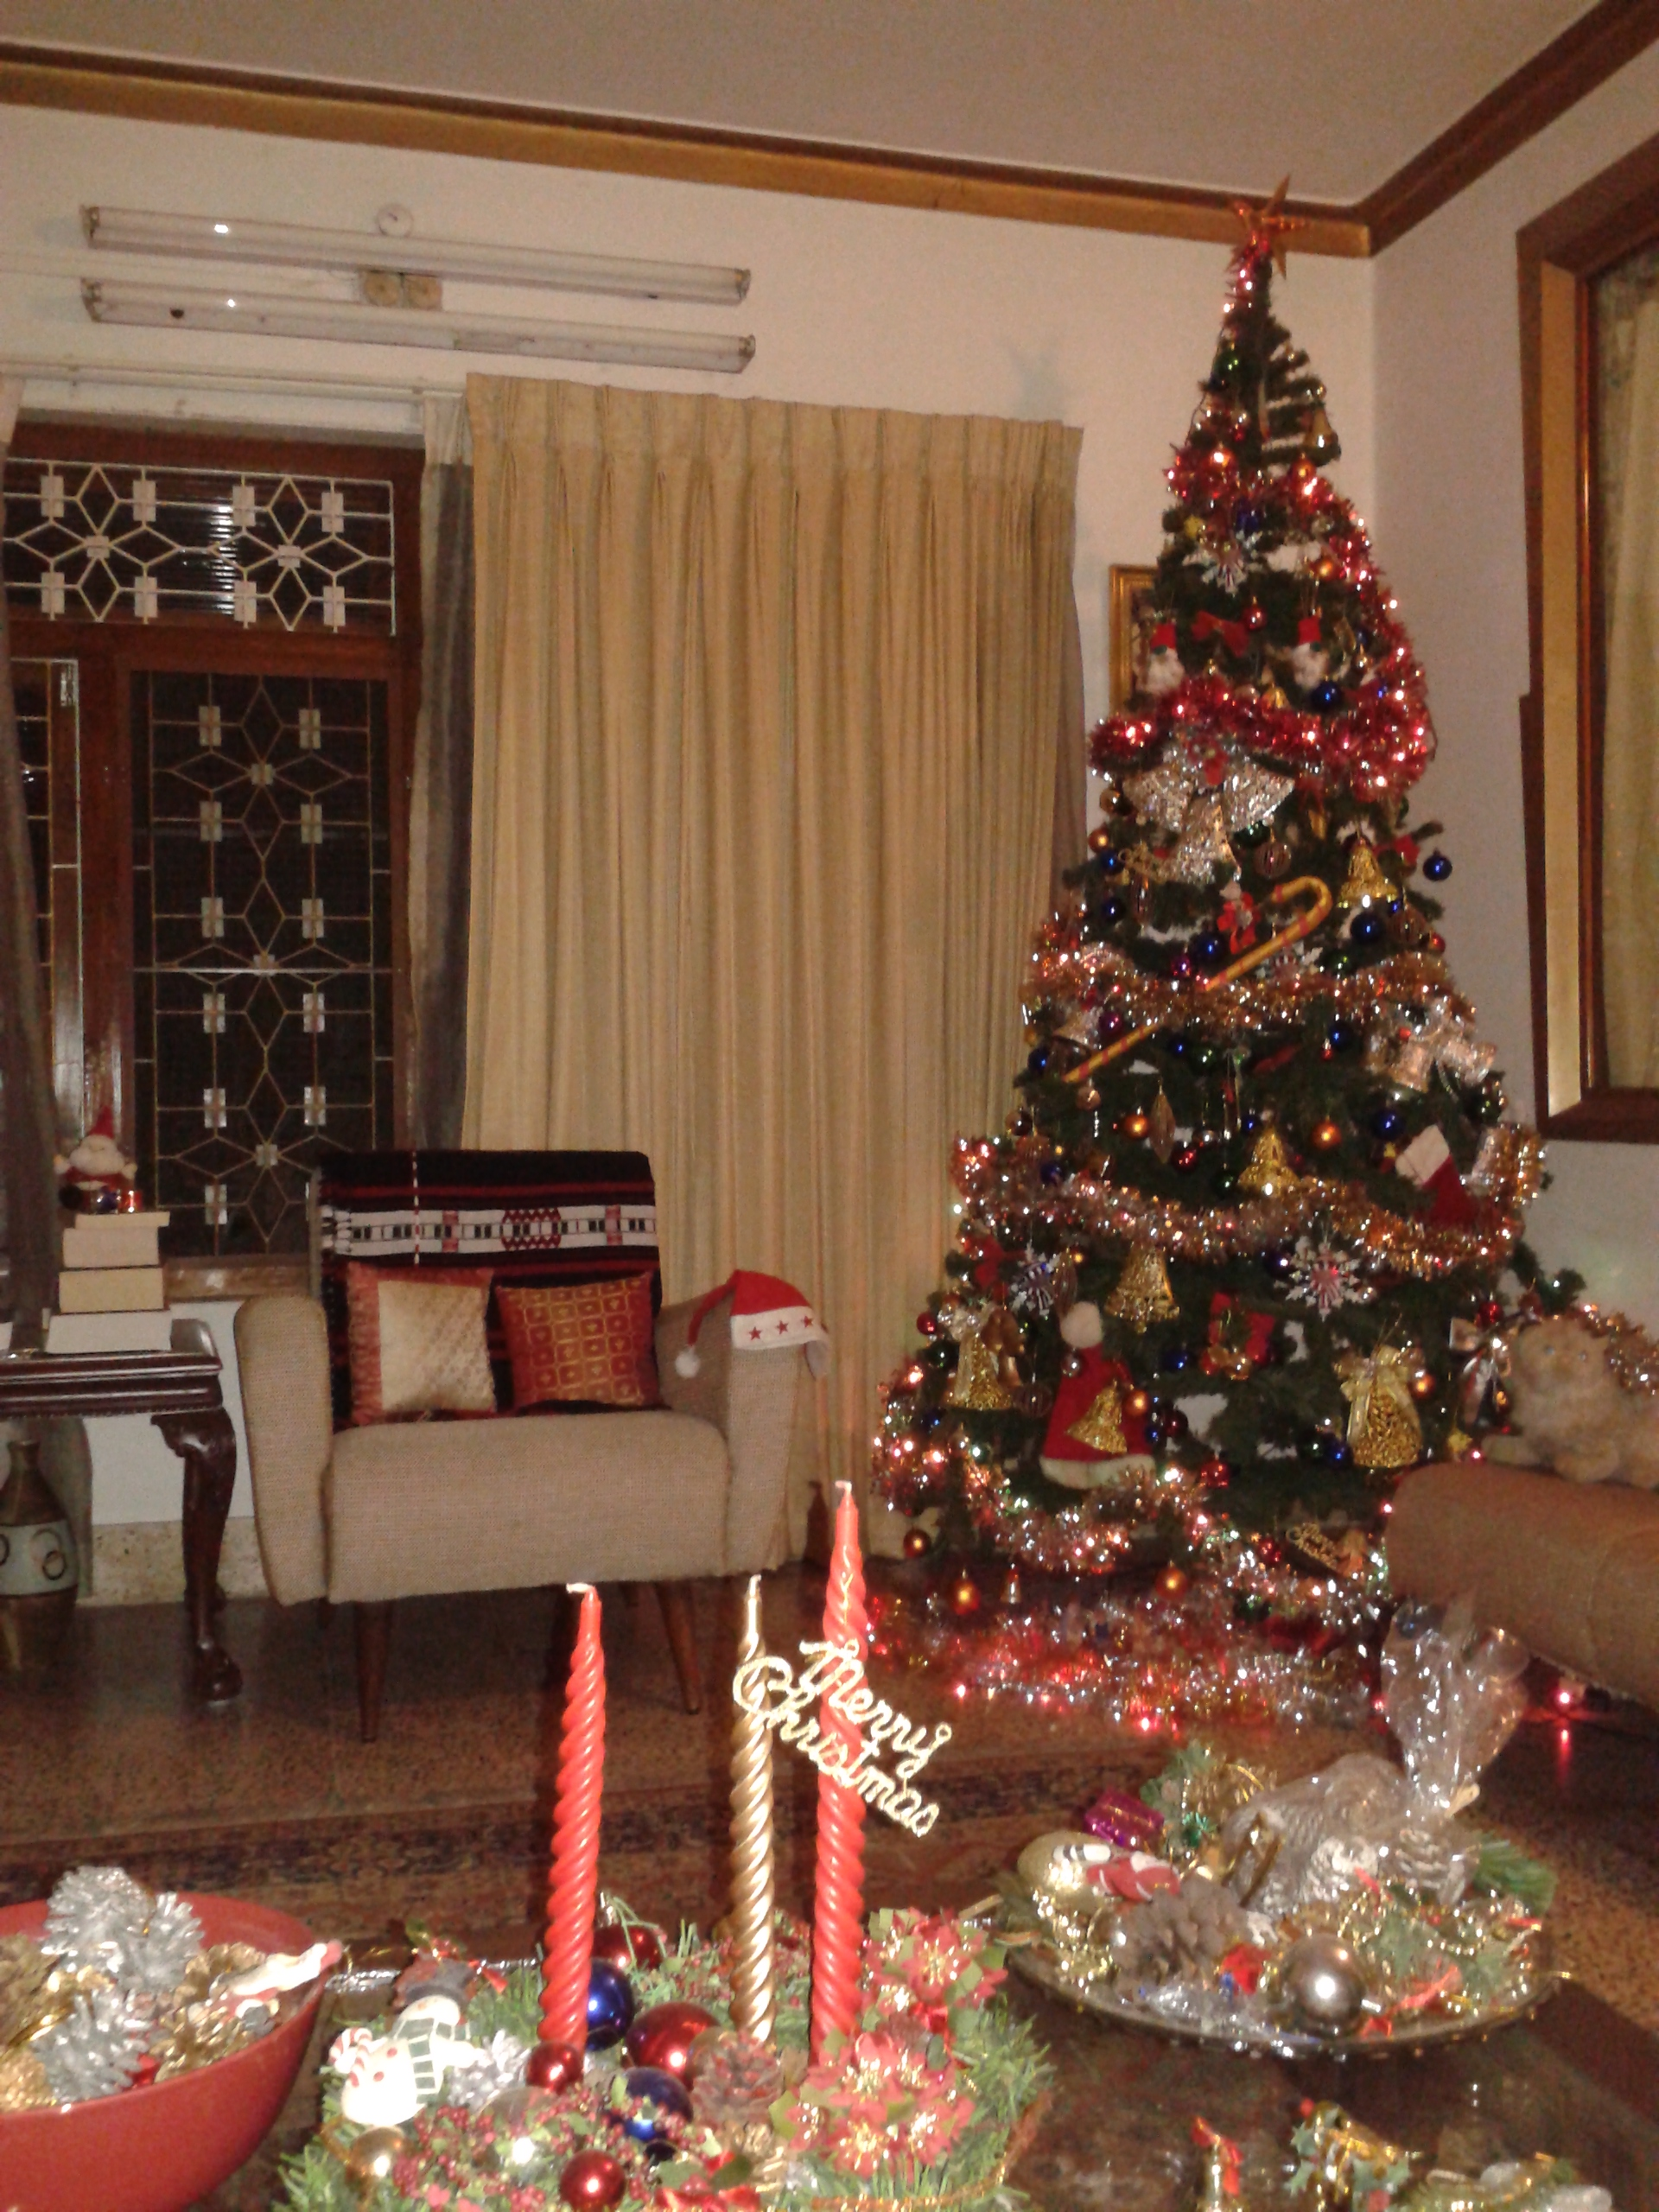 File christmas tree in a home kerala india jpg for Living room xmas ideas